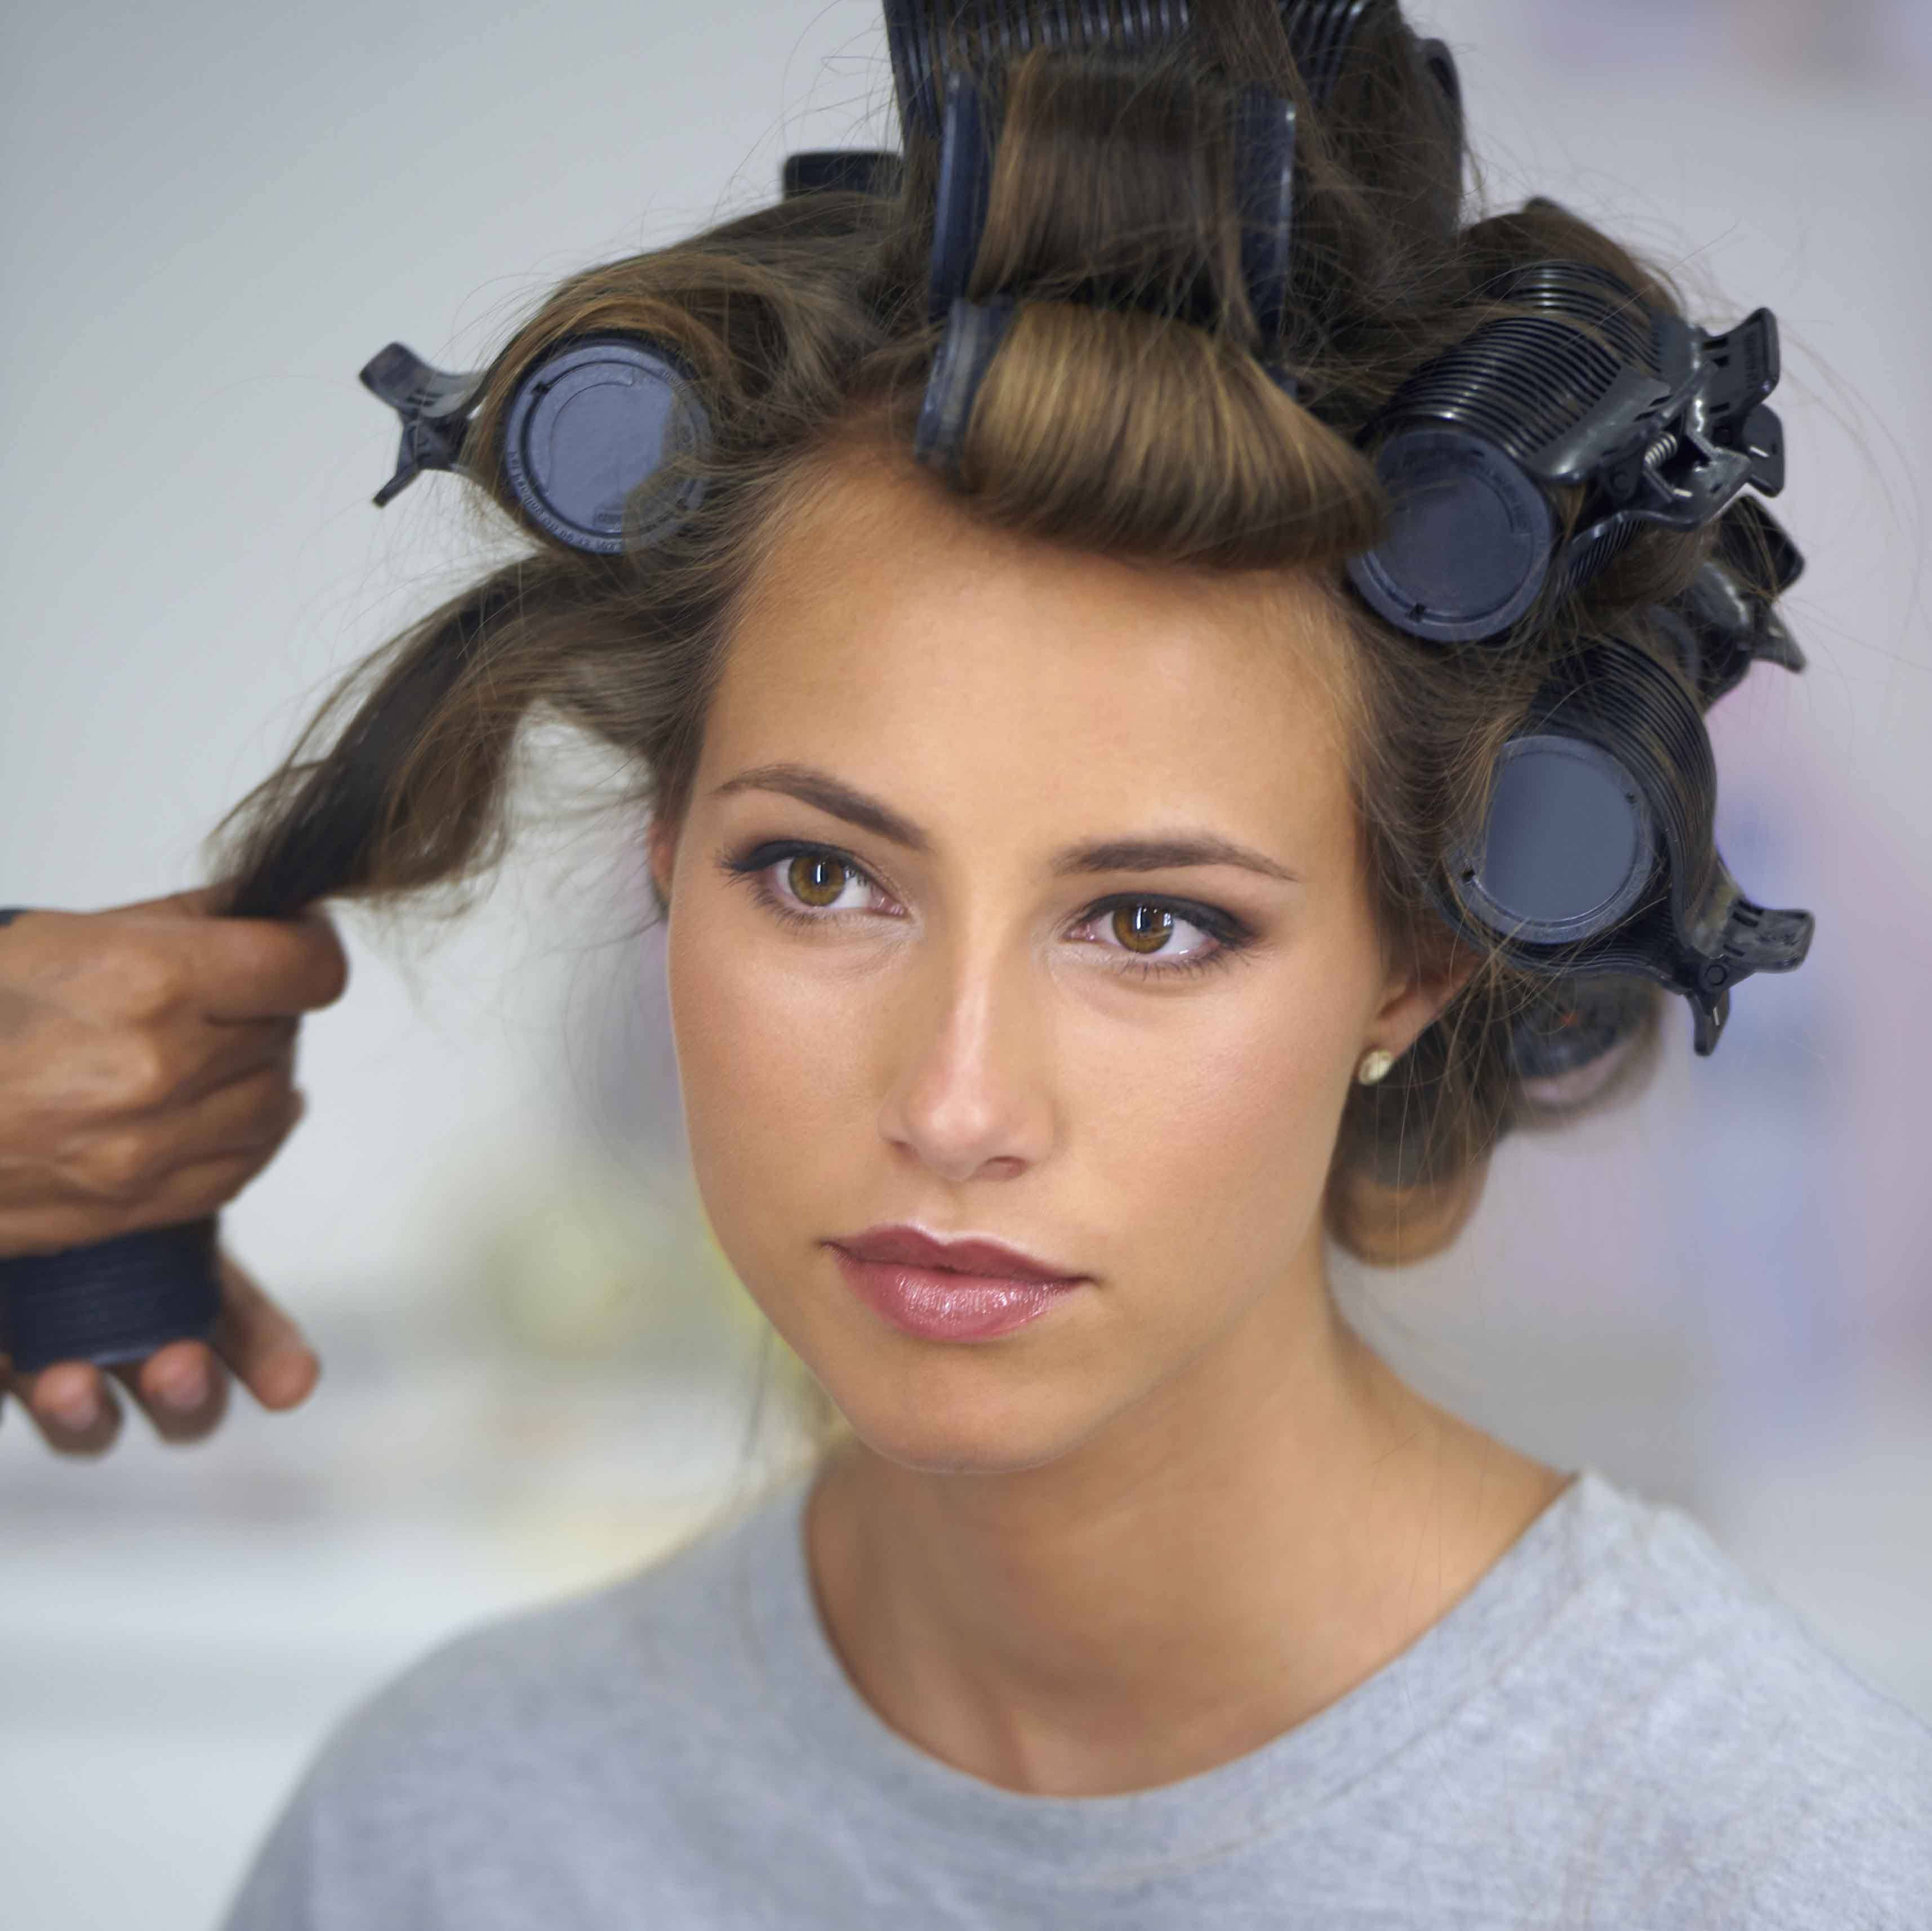 young woman getting hair styled with hot rollers